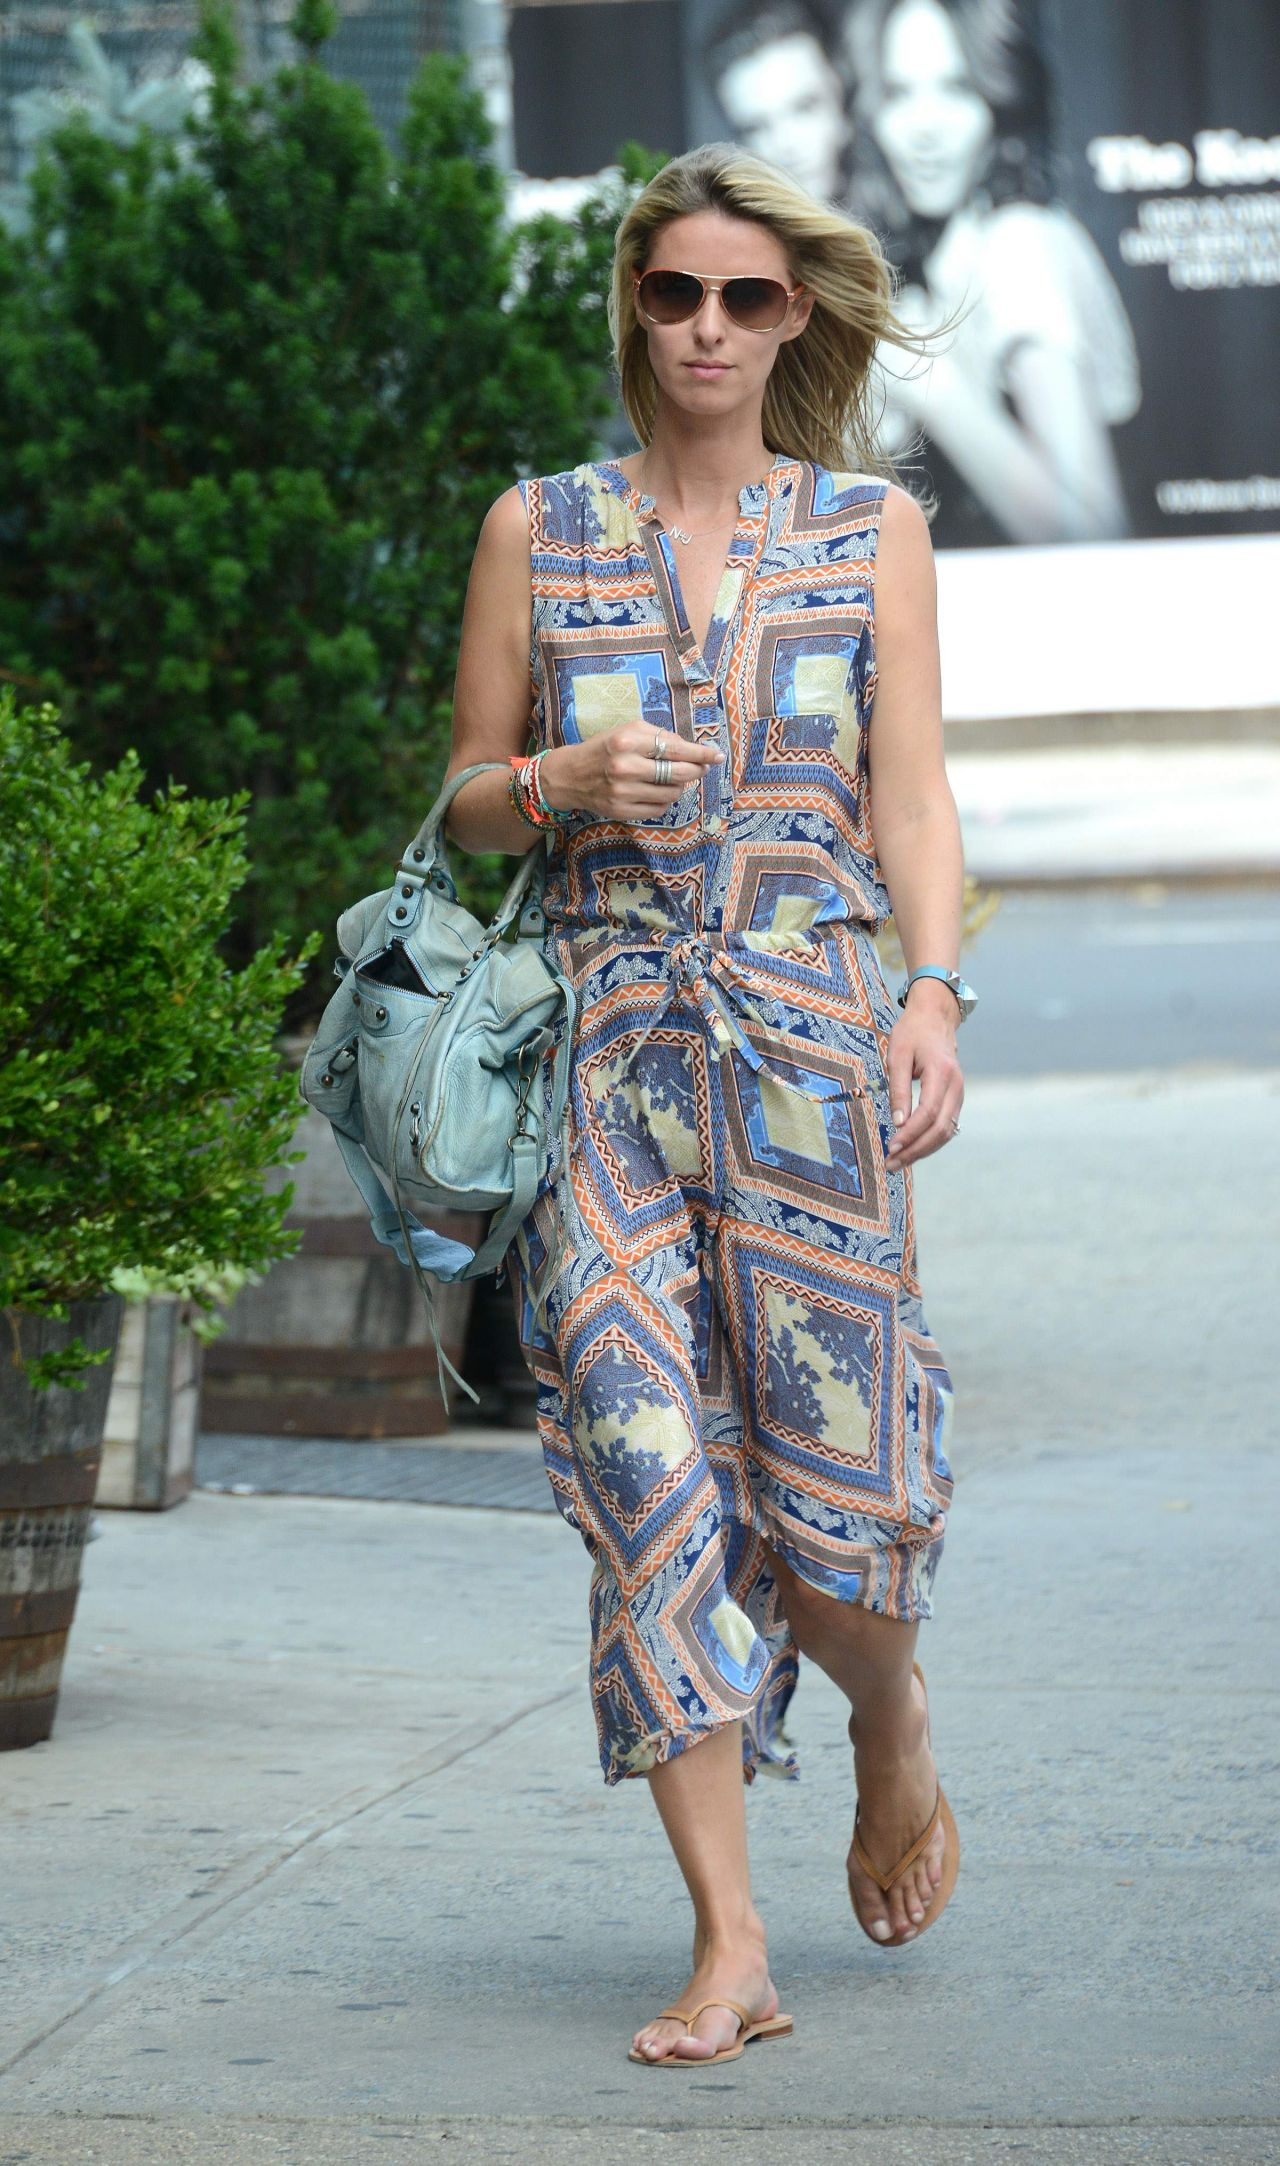 2015 June: Nicky Hilton Summer Style